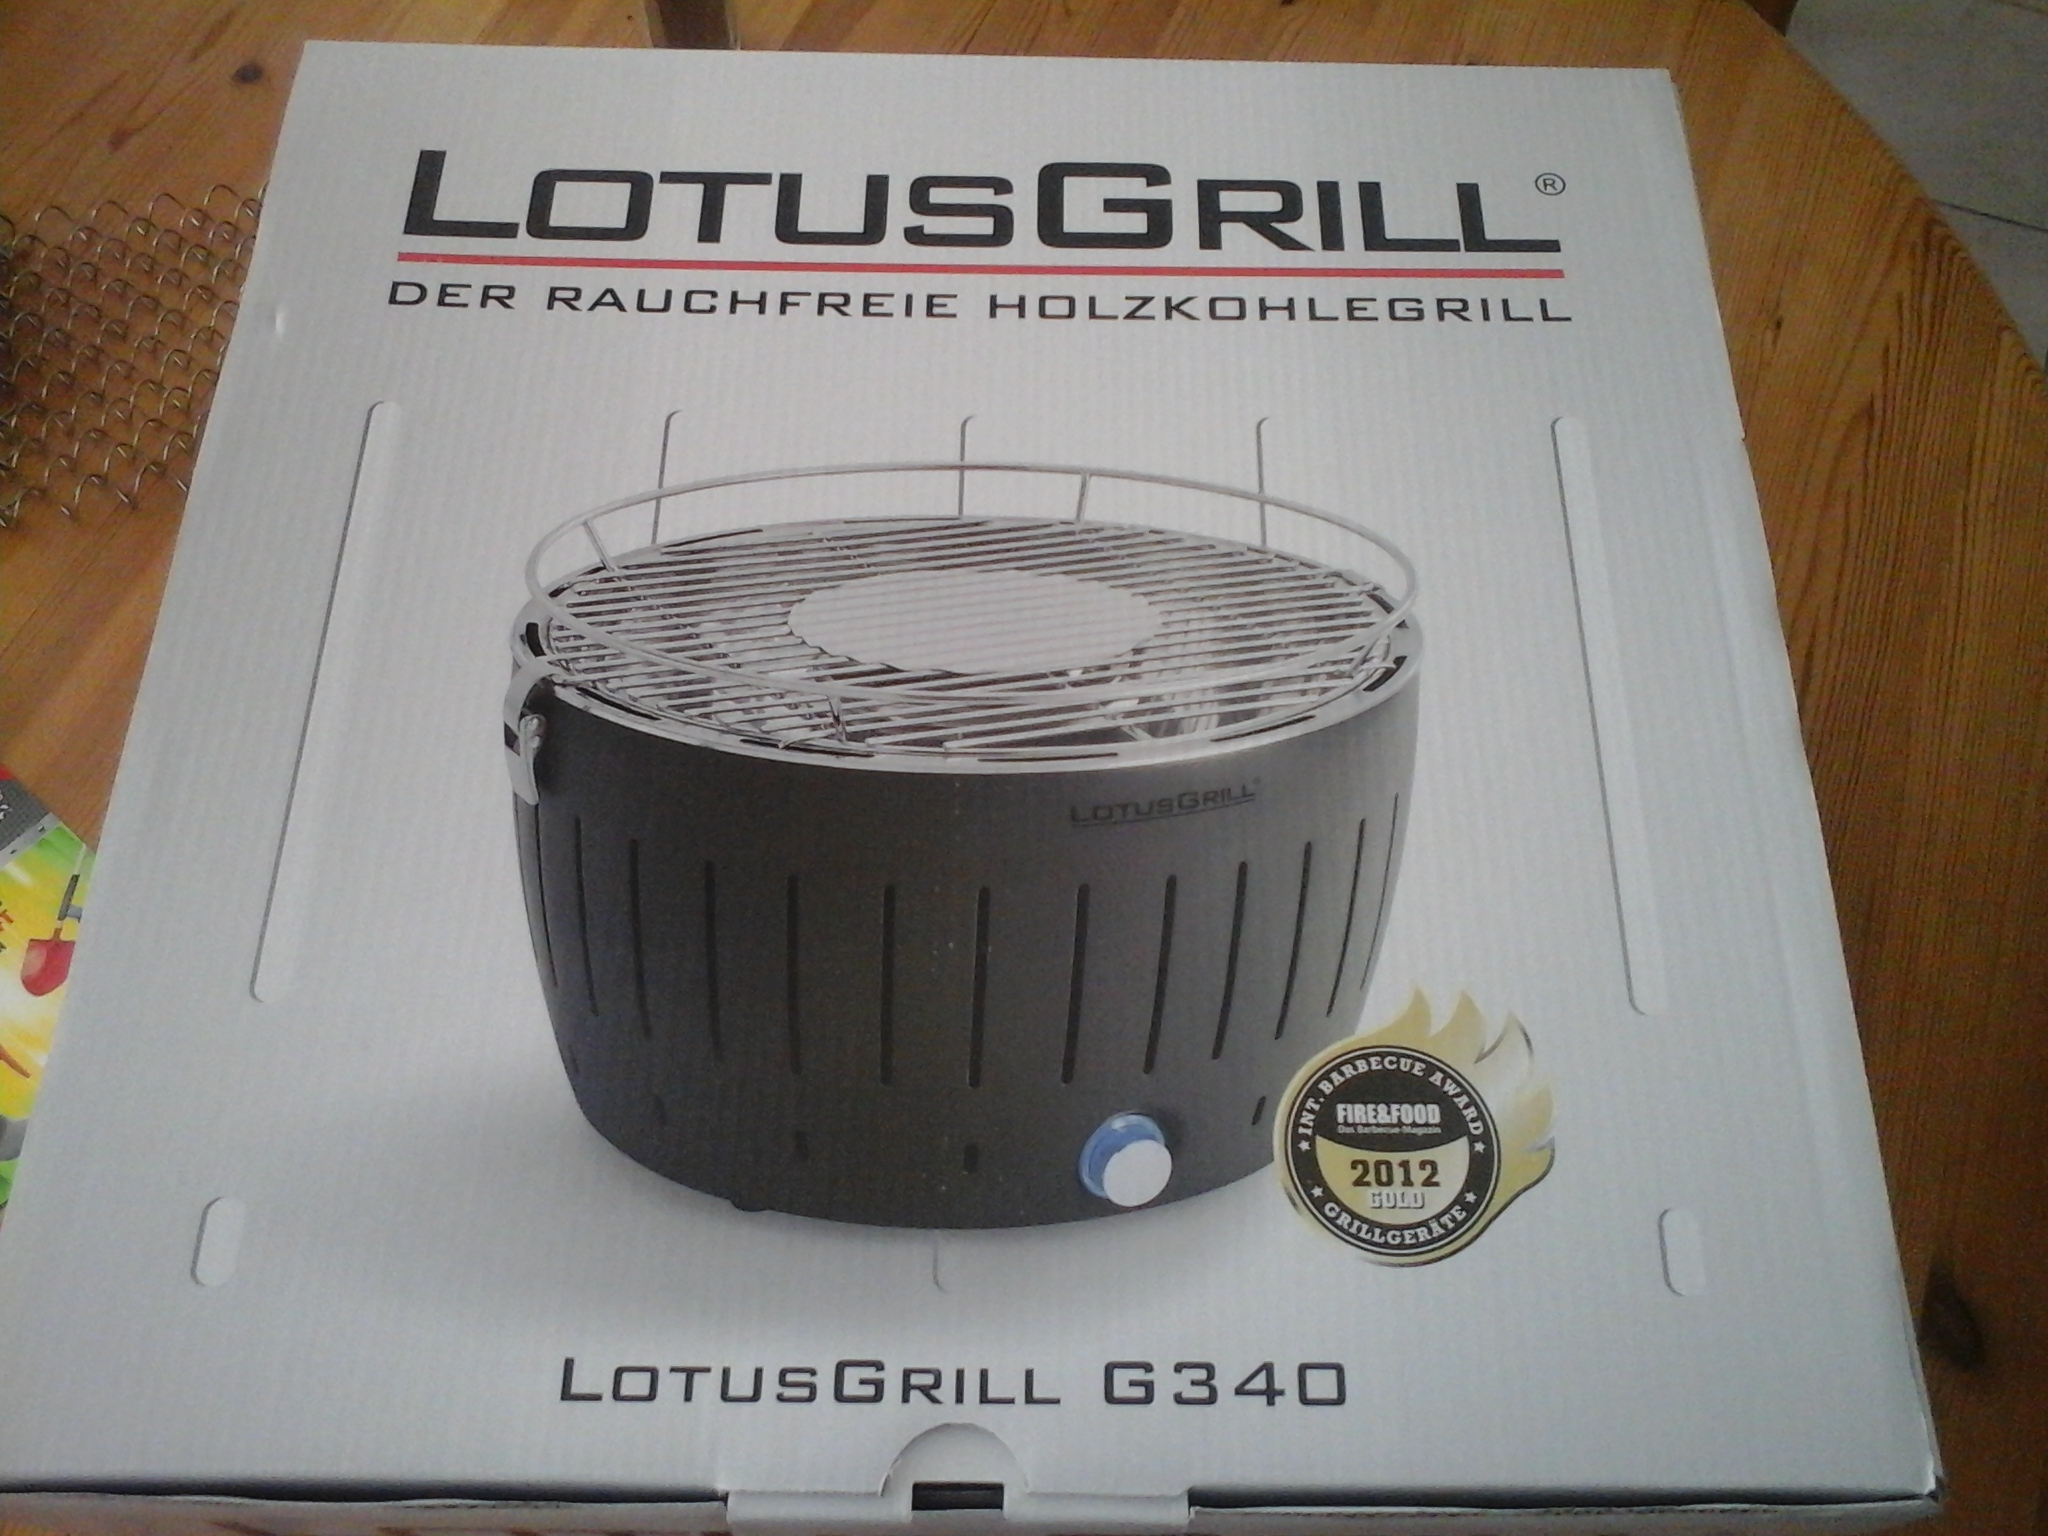 Lotusgrill Holzkohlegrill Test : Lotus grill die test blogger